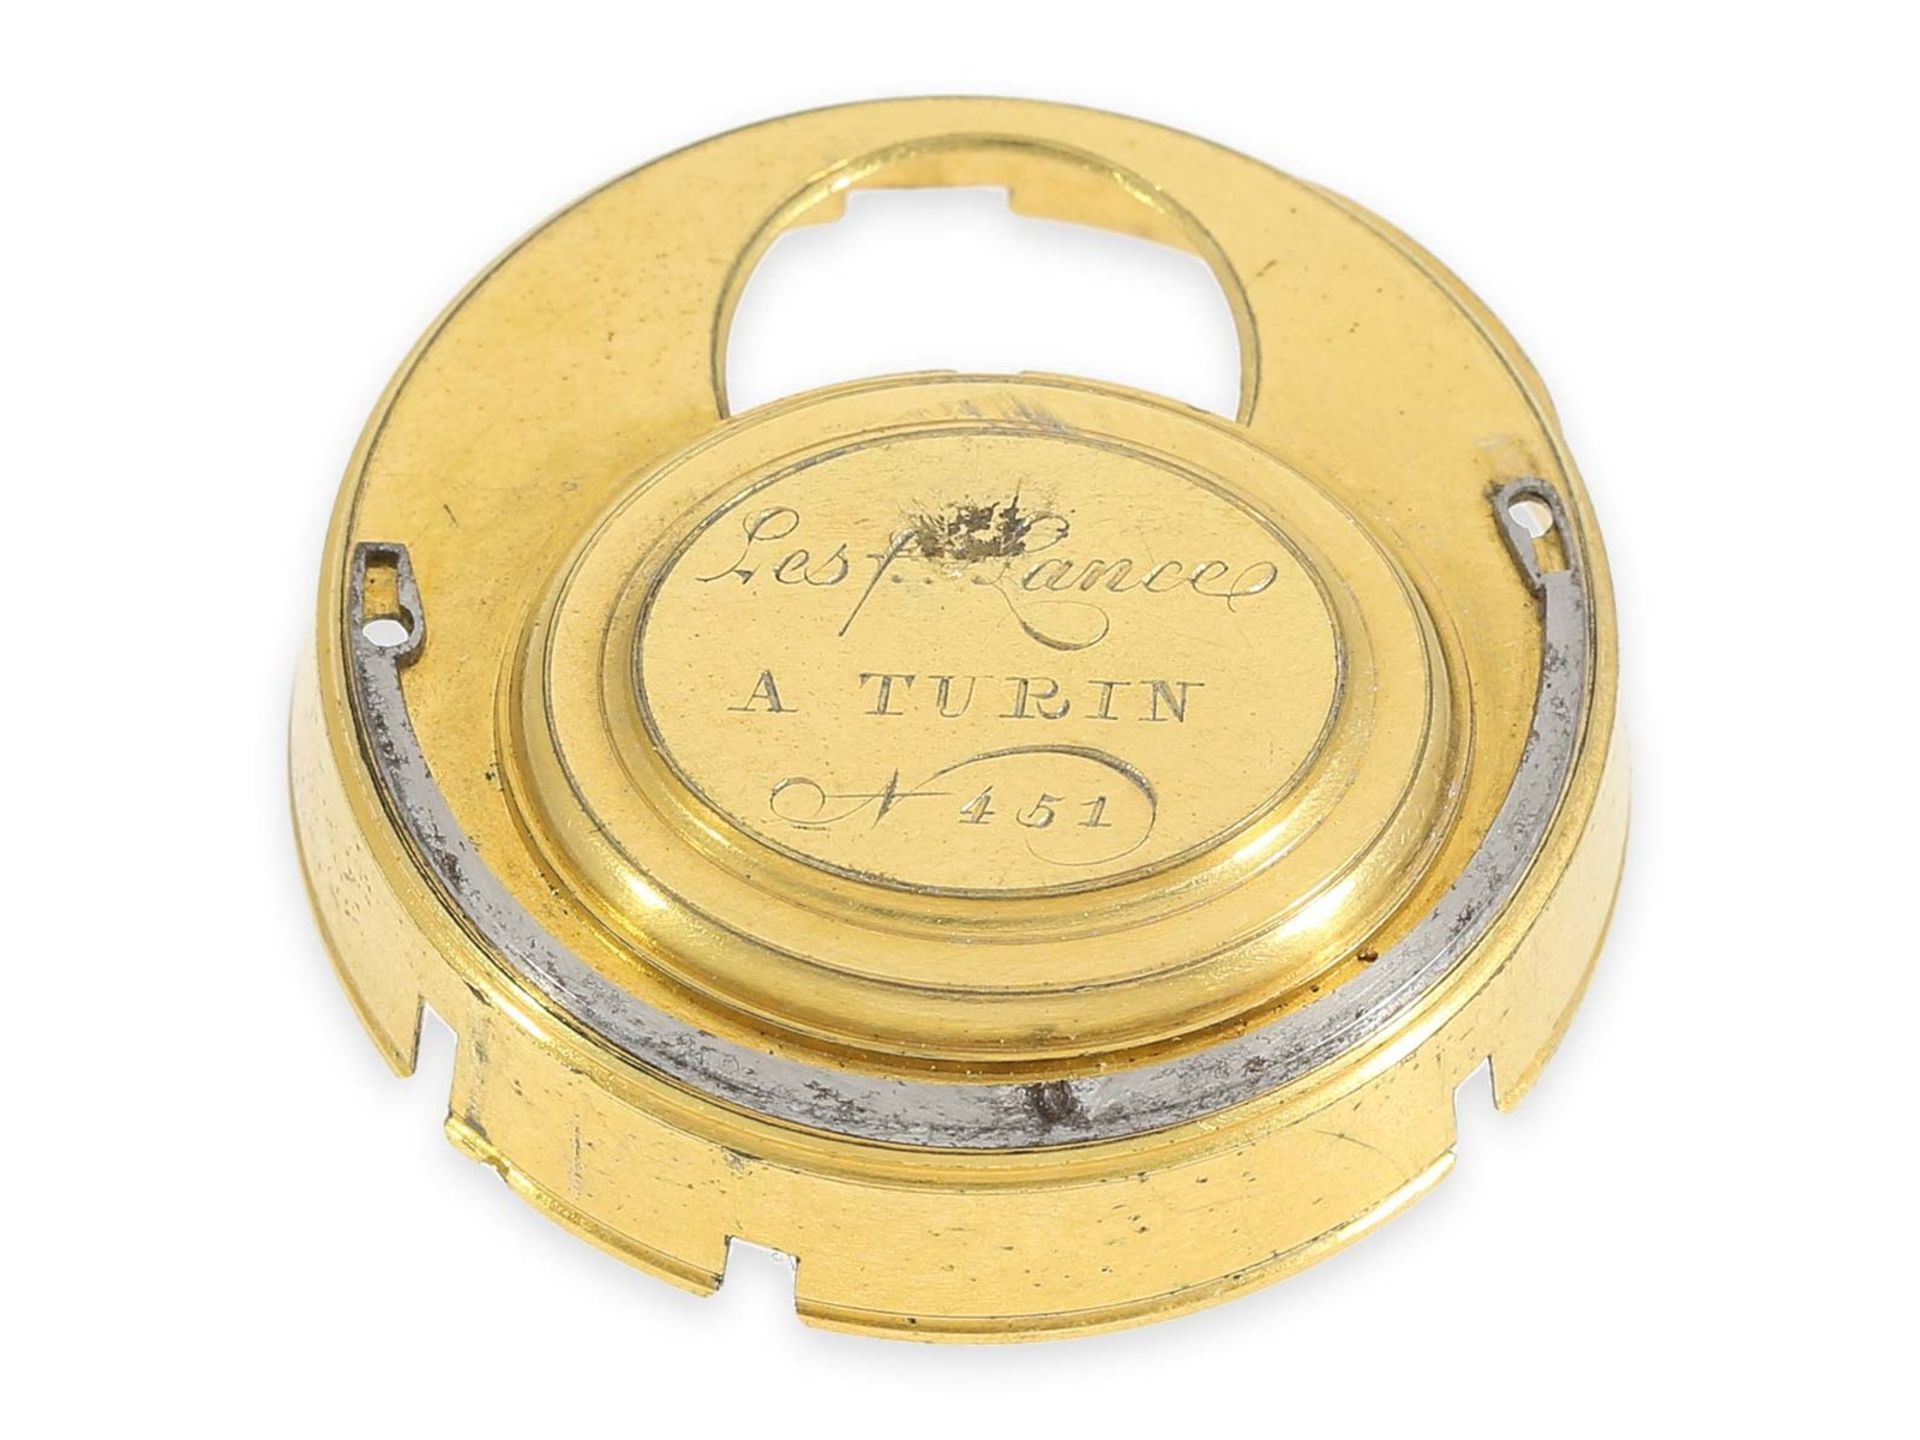 Pocket watch: extraordinary large Italian verge watch repeater a toc et a tact, Les Freres Lance - Bild 4 aus 4